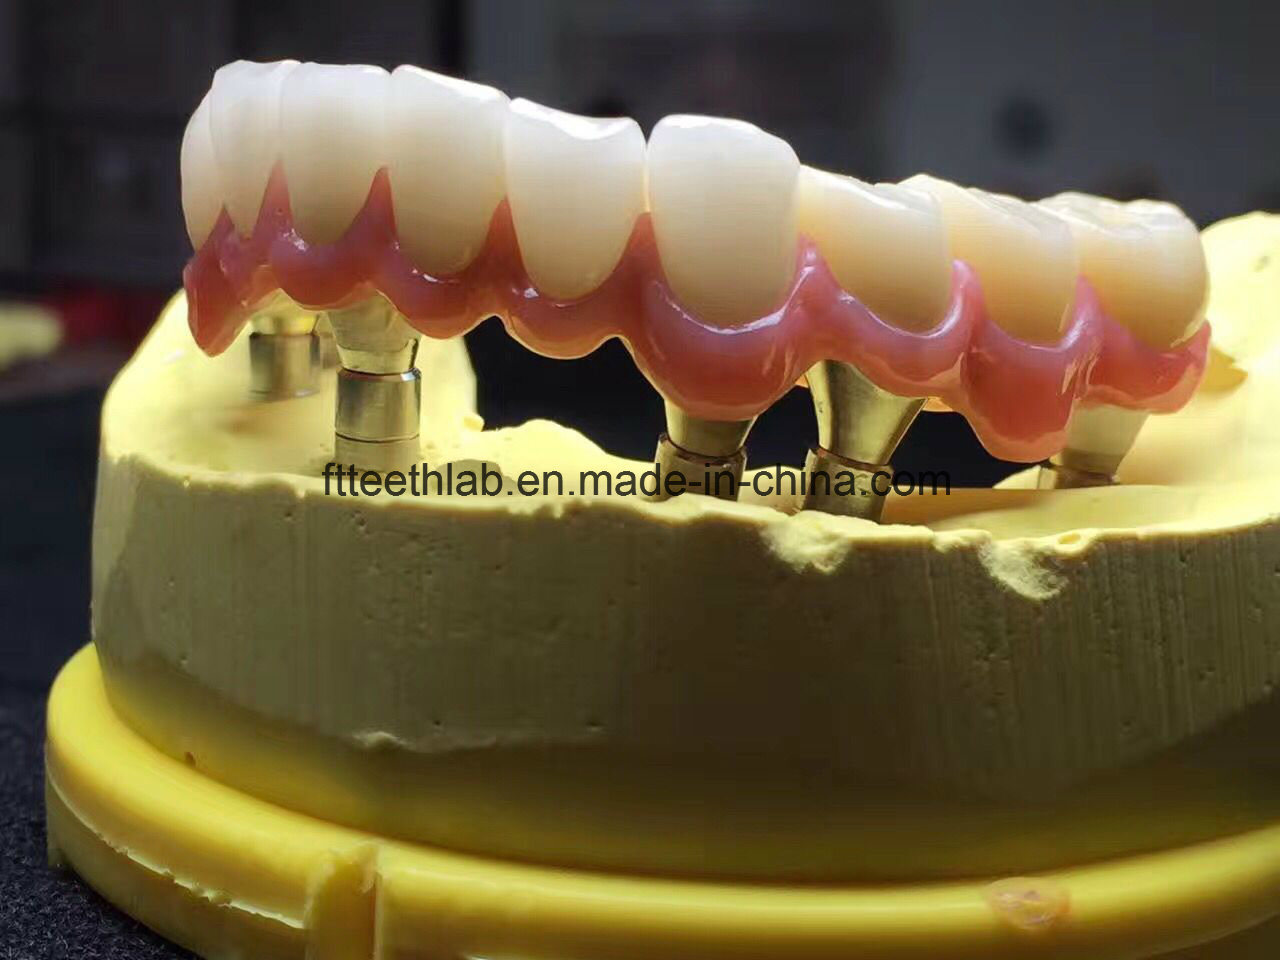 Full Arch Zirconium Implant Bridge From China Dental Lab